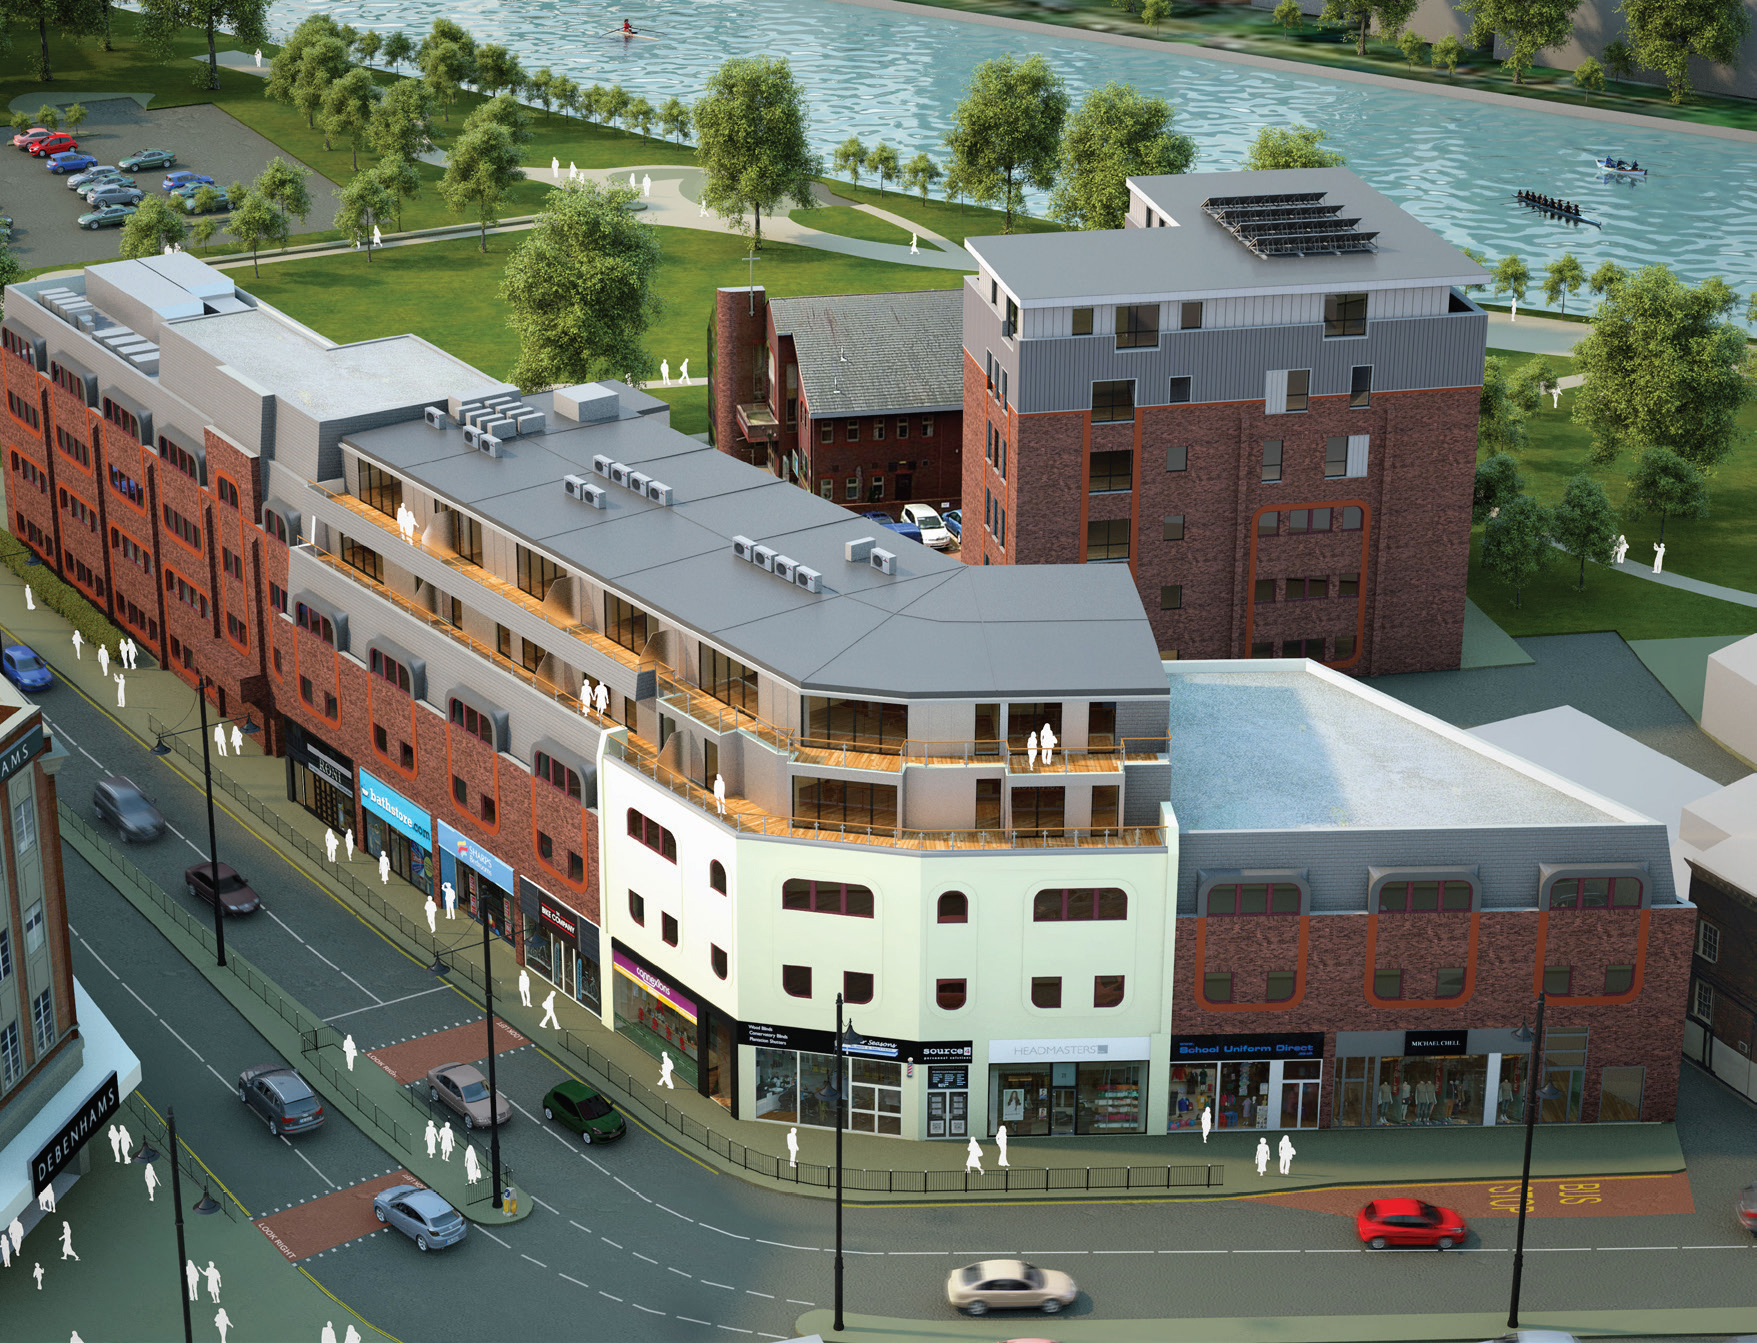 Waterside new home development, Staines-upon-Thames